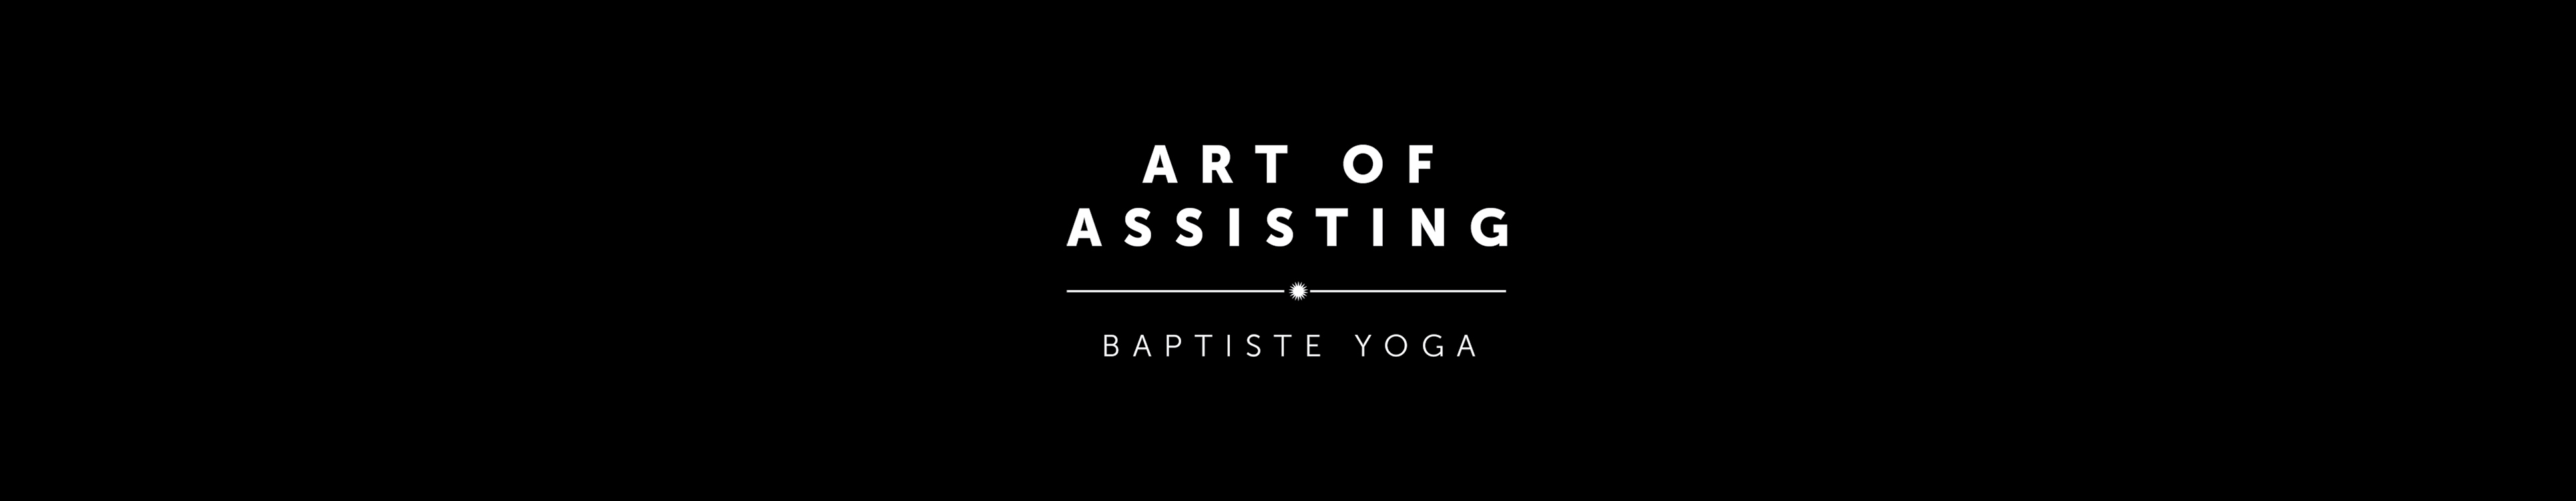 PYC Mississauga | Art of Assisting